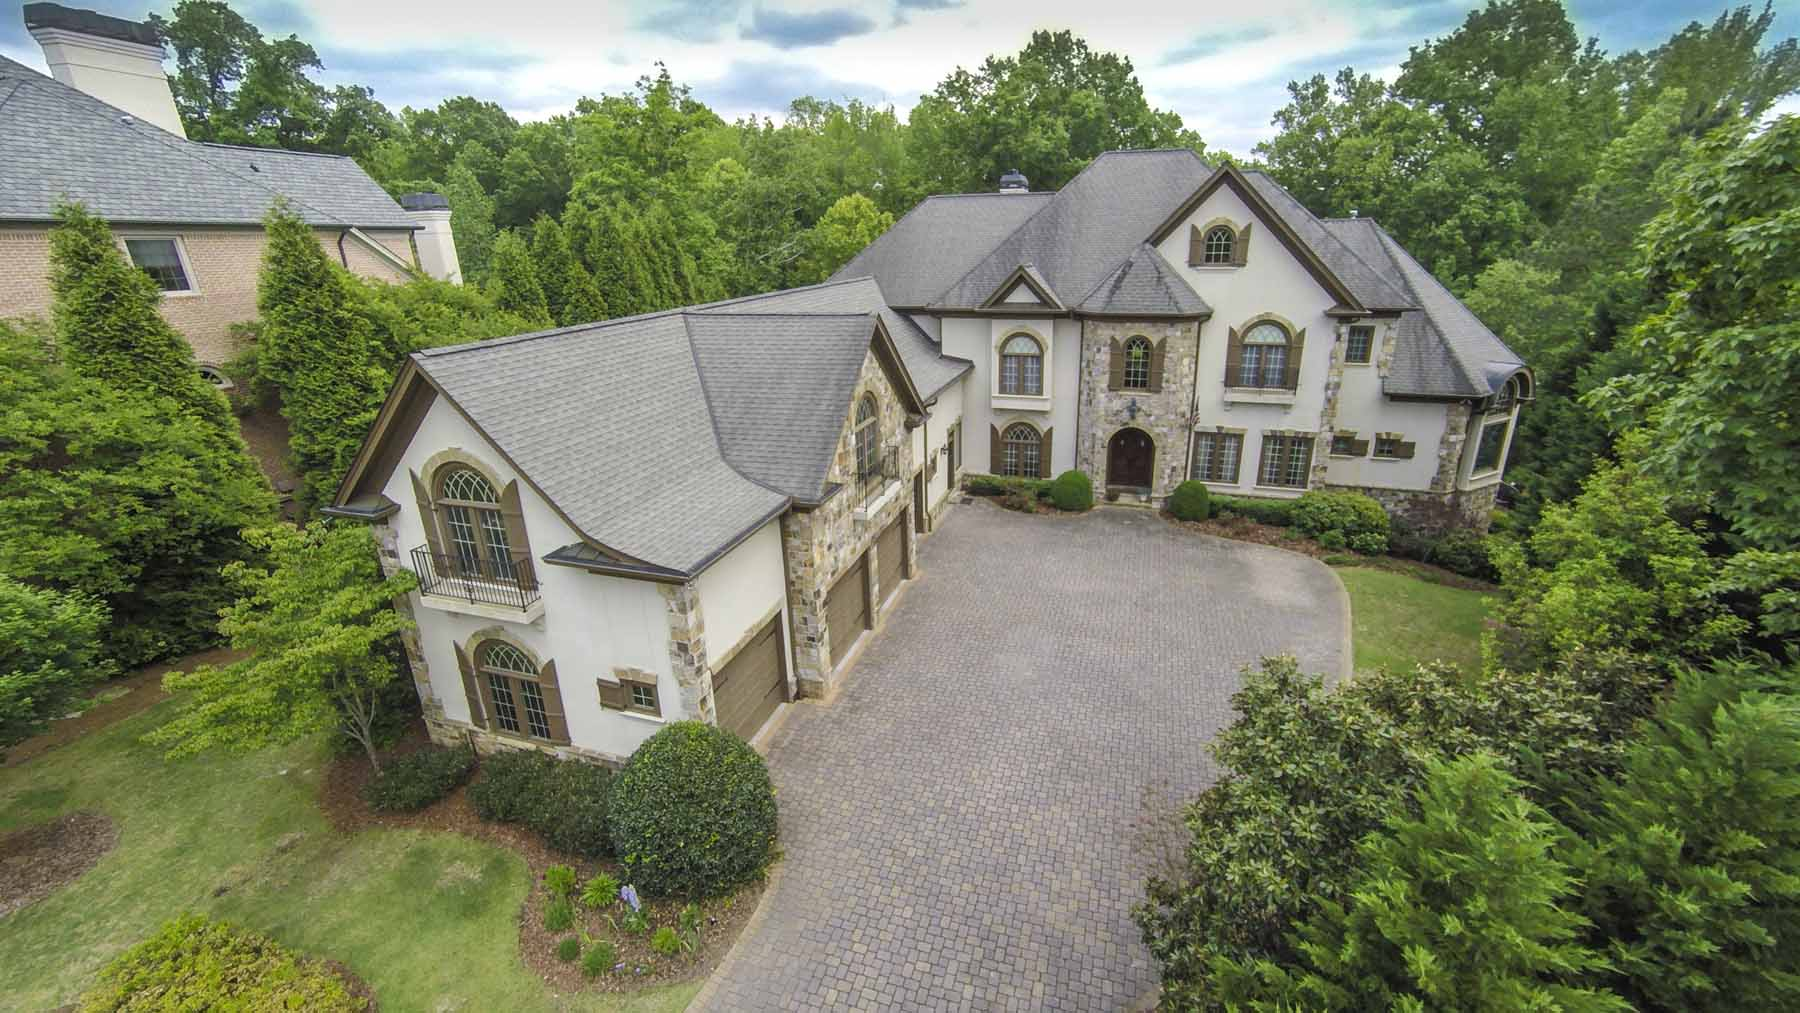 獨棟家庭住宅 為 出售 在 Stunning Home Meets Modern Updates on the Sparkling Chattahoochee River 500 Covington Cove Alpharetta, 喬治亞州 30022 美國